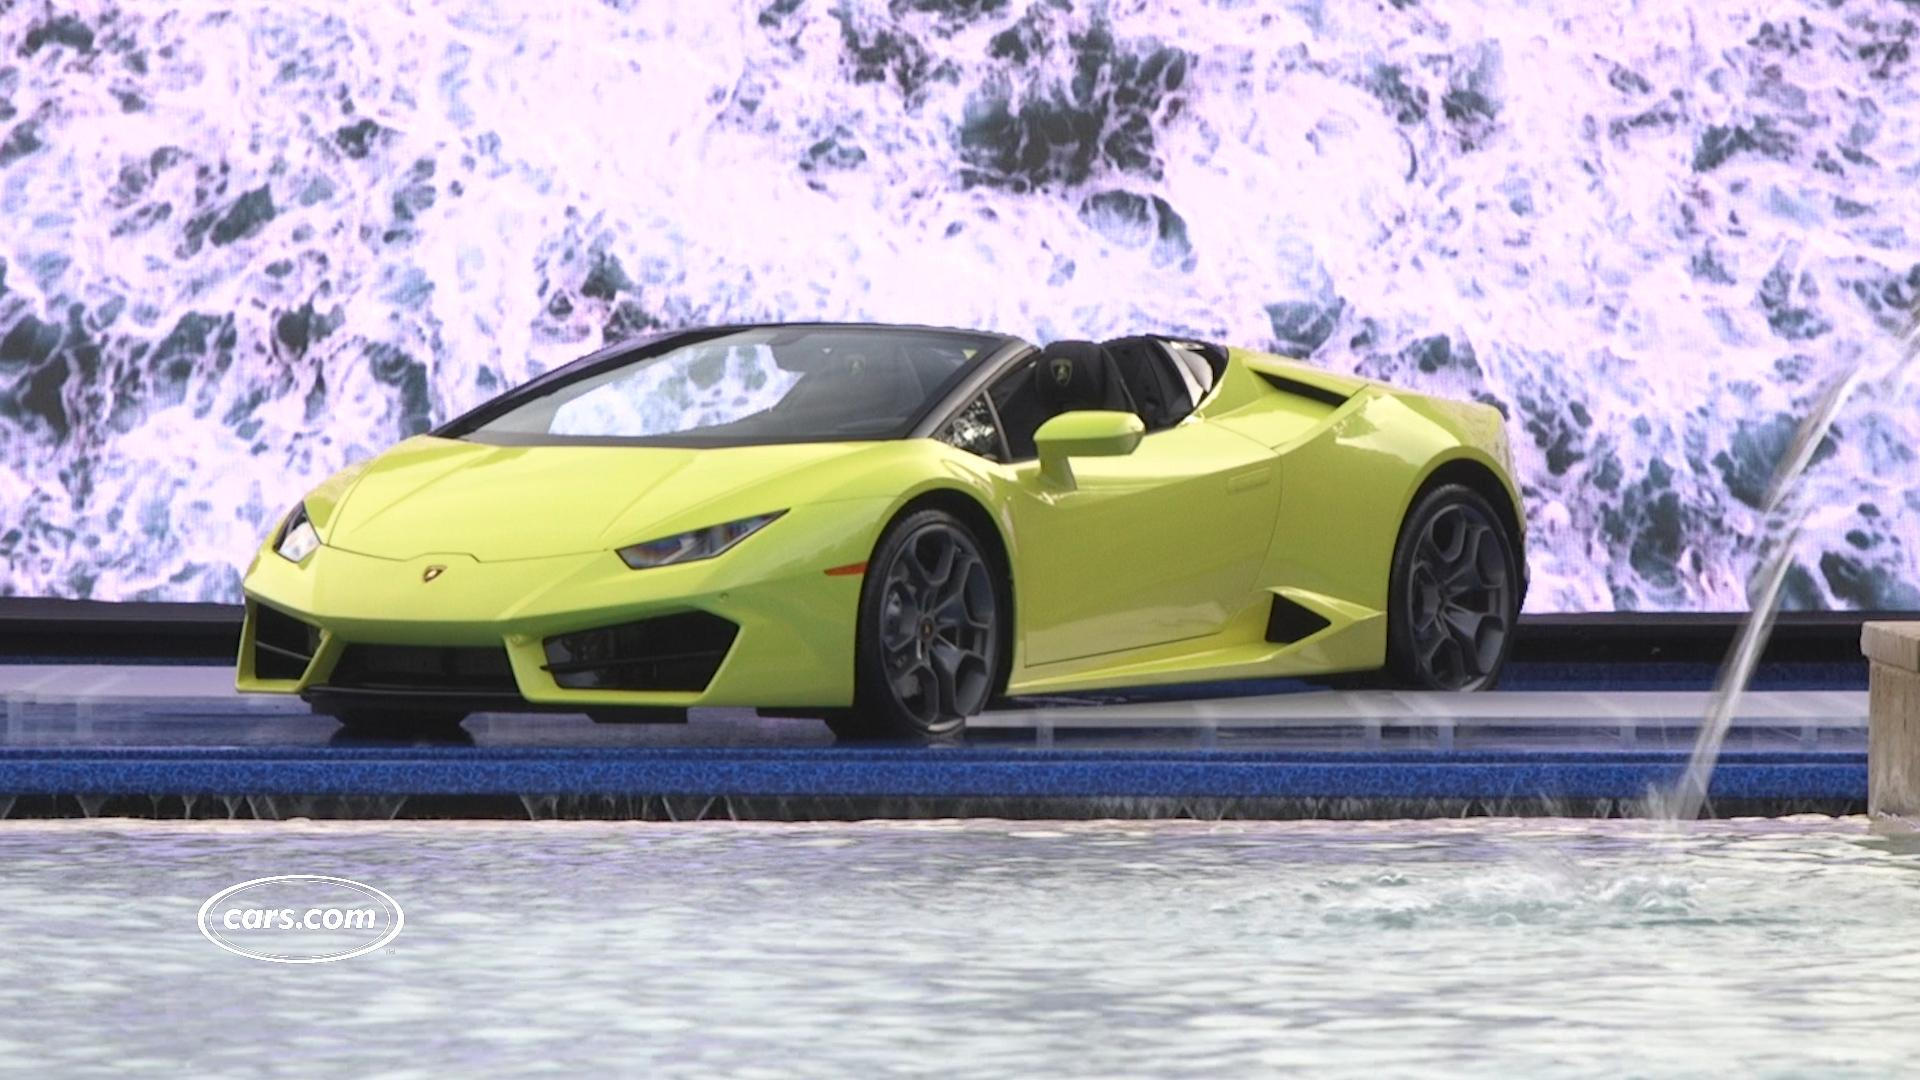 Video: 2017 Lamborghini Huracán RWD Spyder Review: First Impressions